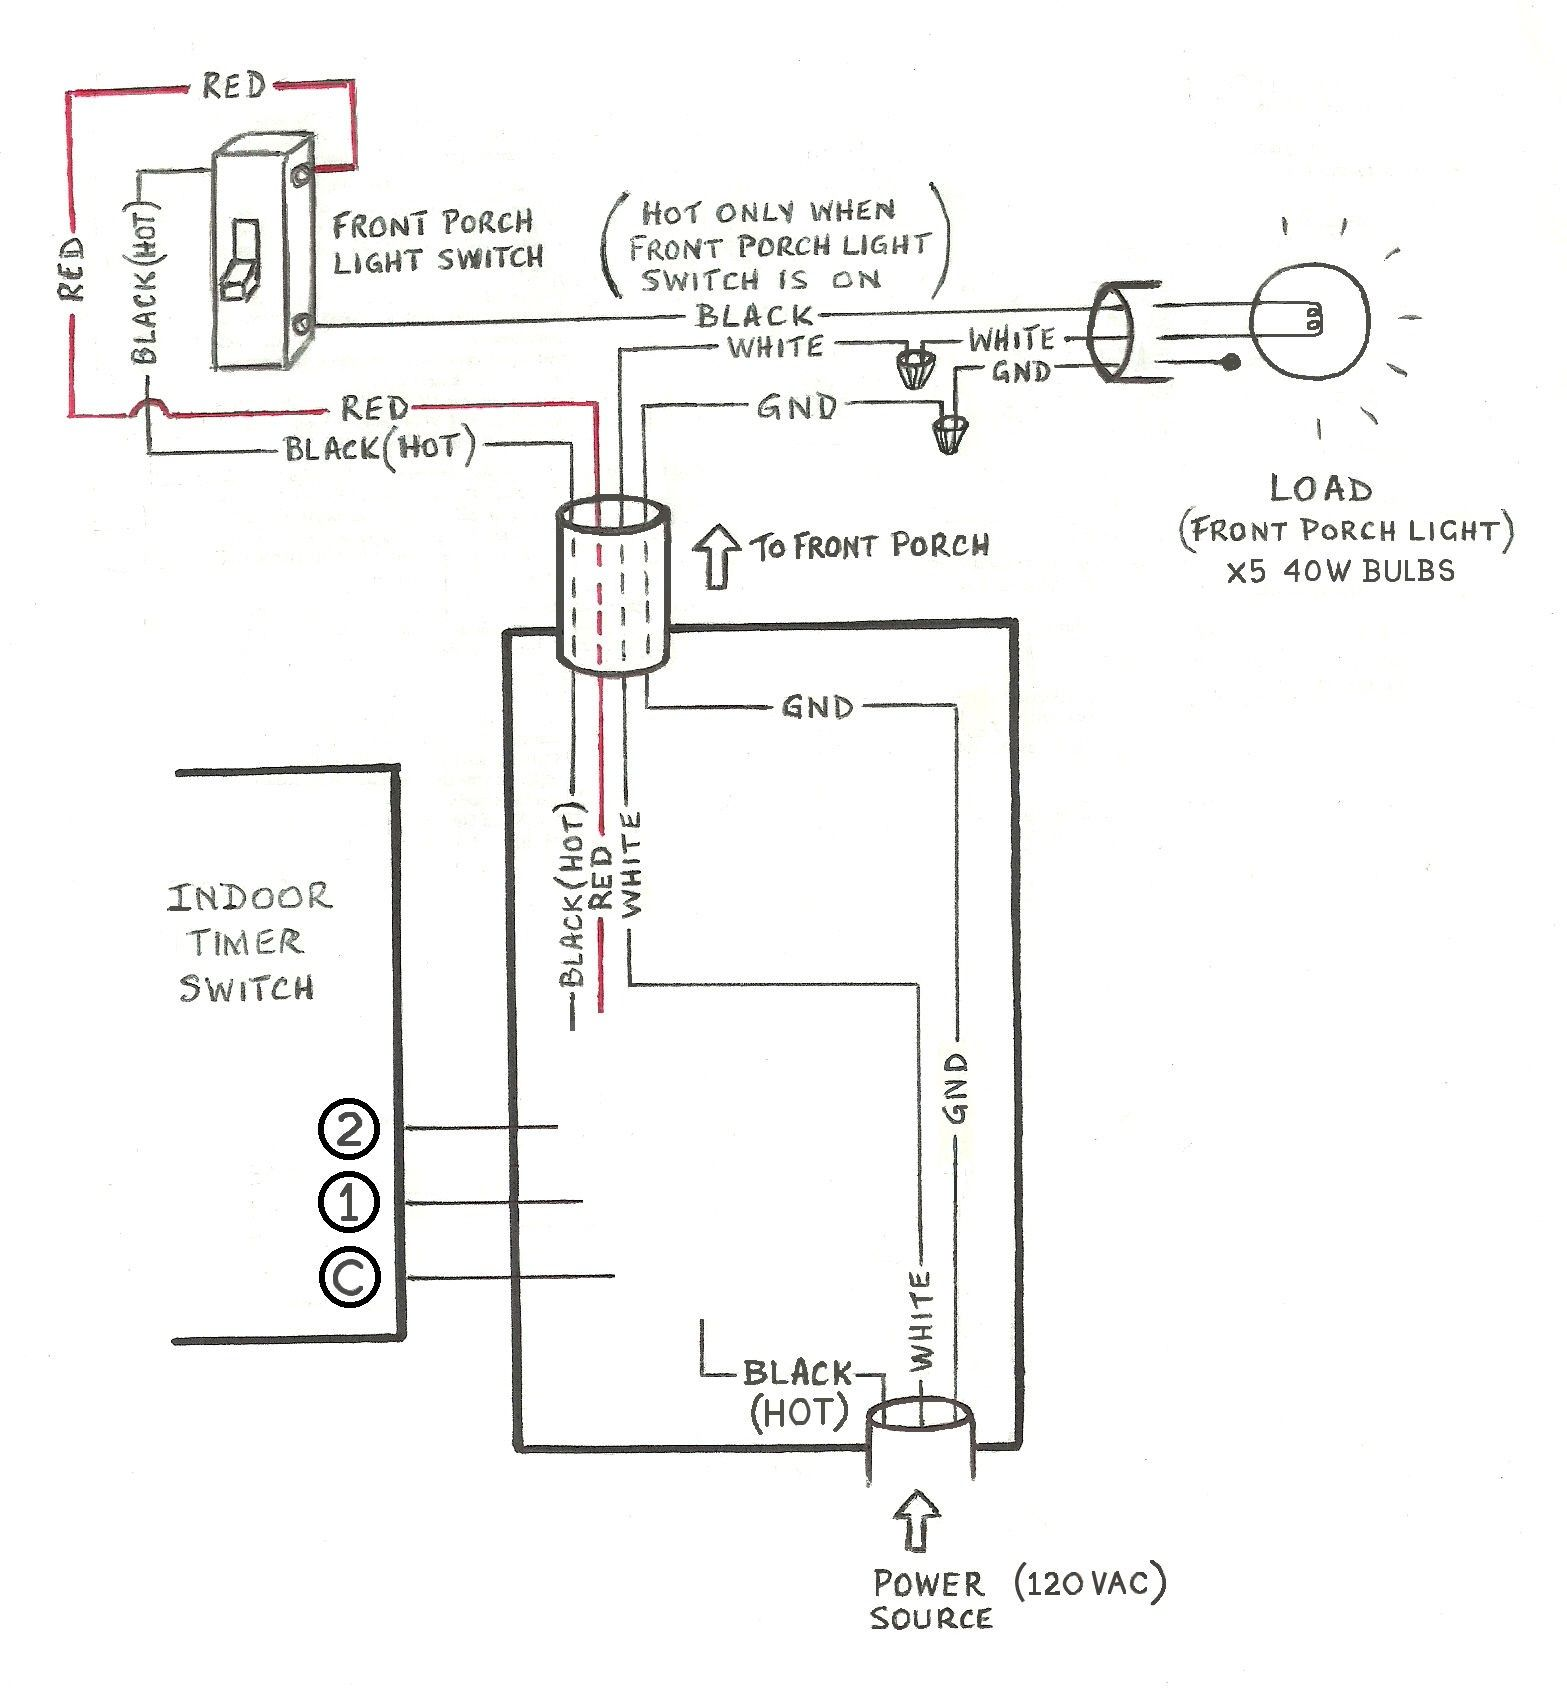 Unique Wiring Diagram For Extractor Fan With Timer Diagram Diagramsample Diagramtem Light Switch Wiring Electrical Circuit Diagram Electrical Wiring Diagram